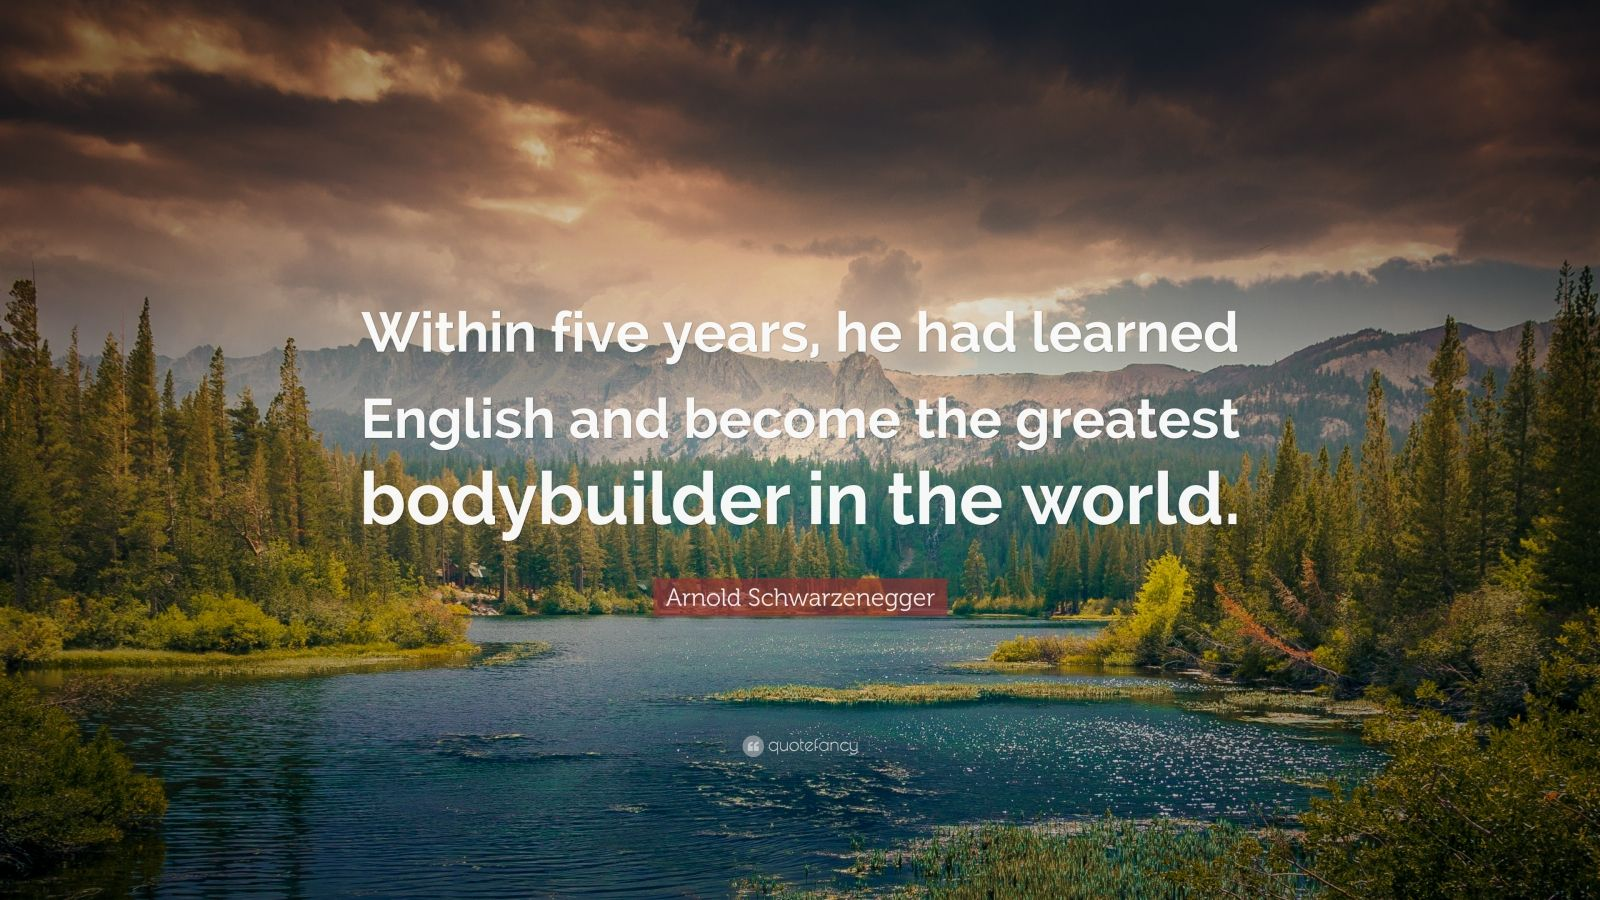 """Arnold Schwarzenegger Quote: """"Within five years, he had learned English and become the greatest bodybuilder in the world."""""""